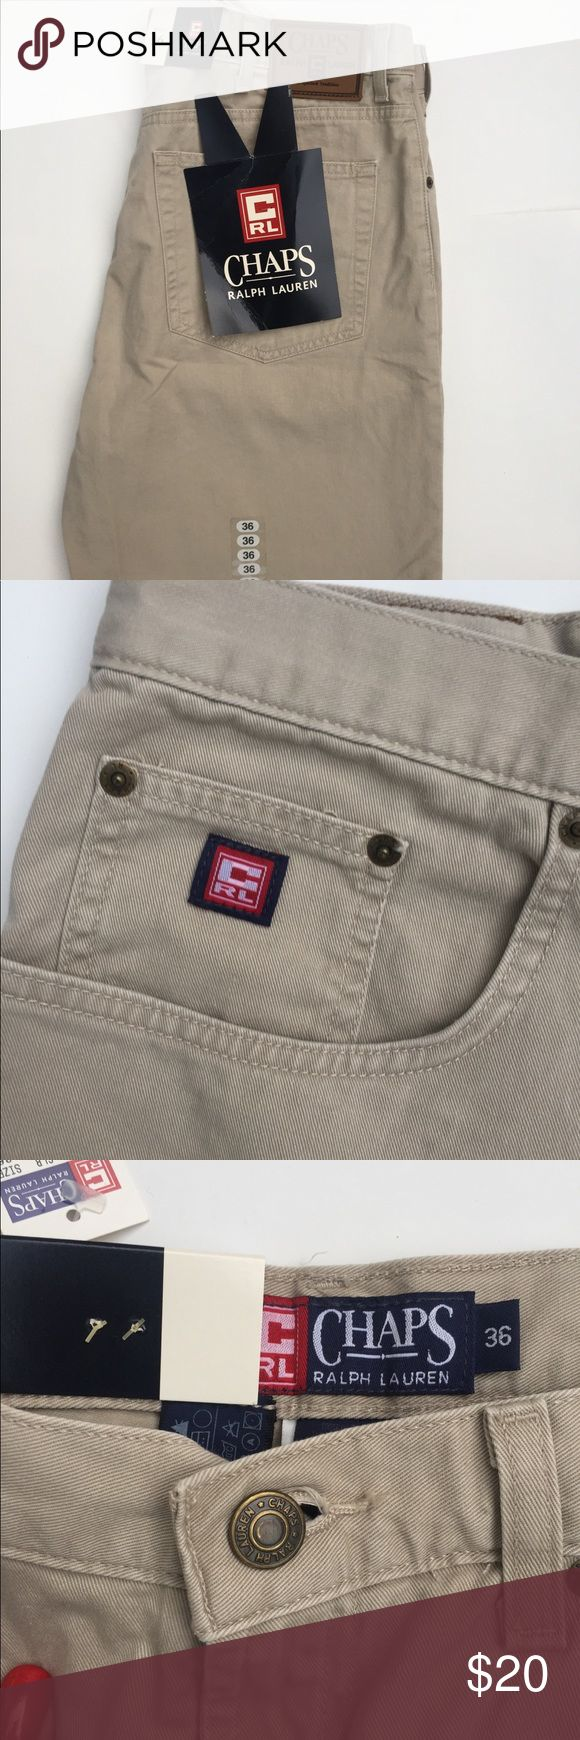 Men's khaki shorts Brand new never worn Men's chap shorts. Size 36. Tags are still attached. Chaps Shorts Flat Front